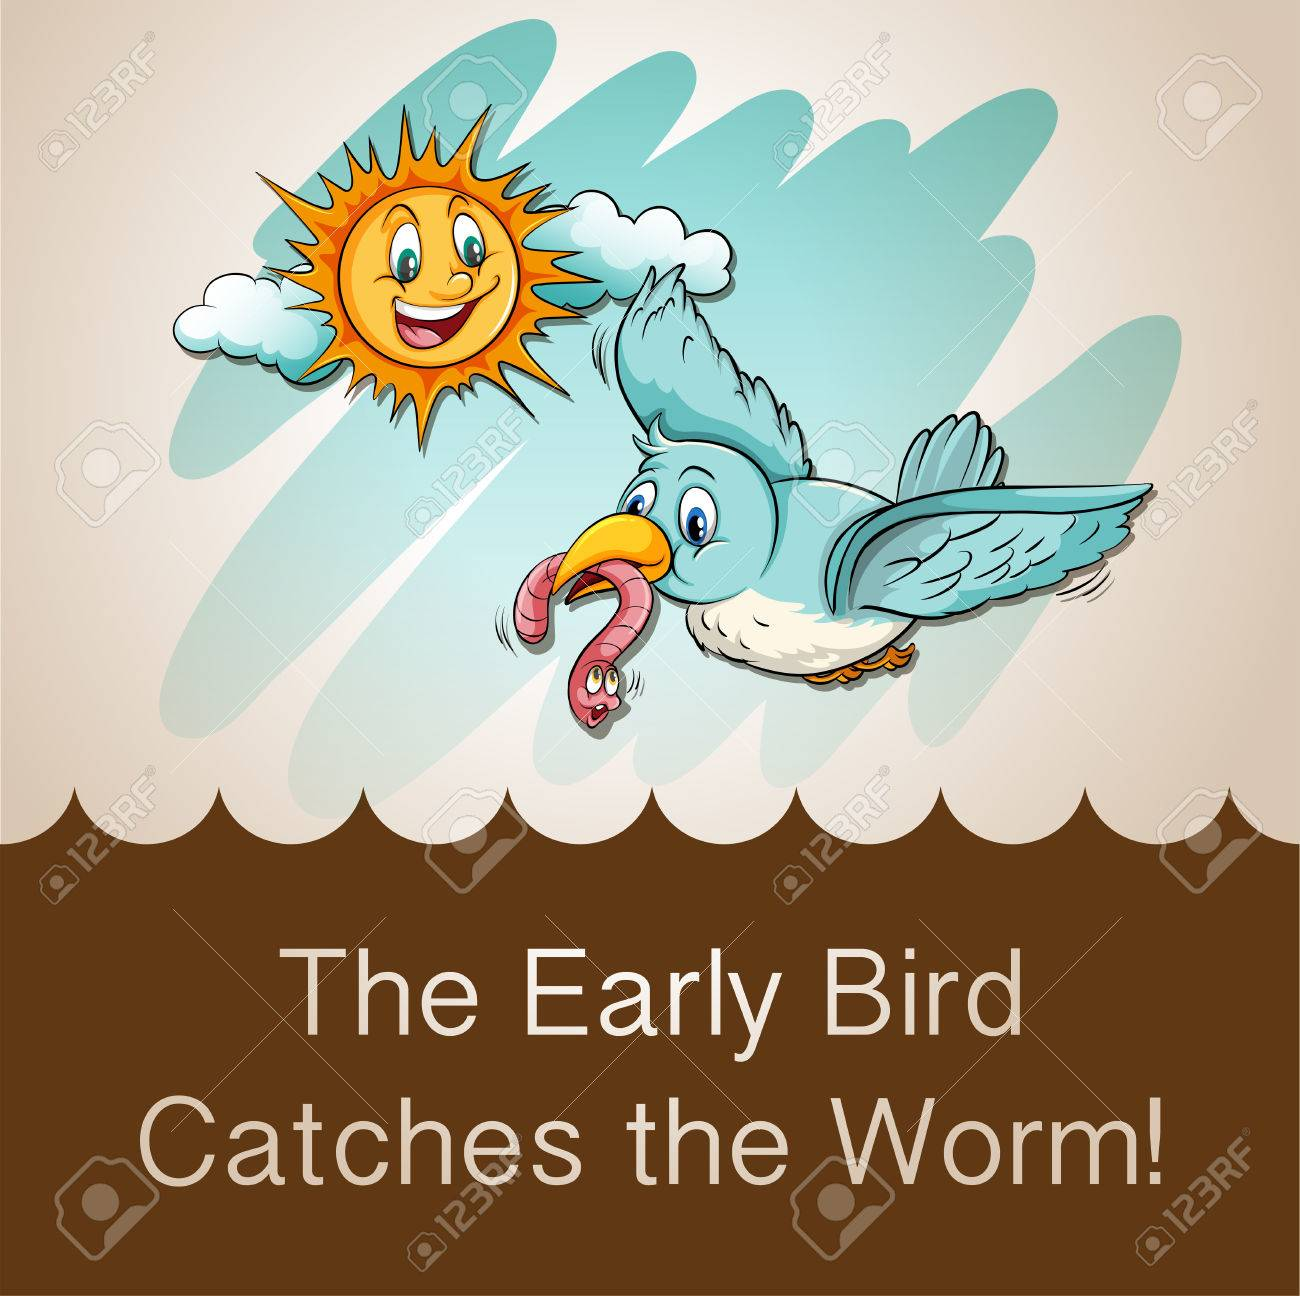 Idiom saying the early bird catches the worm Stock Vector - 42988592